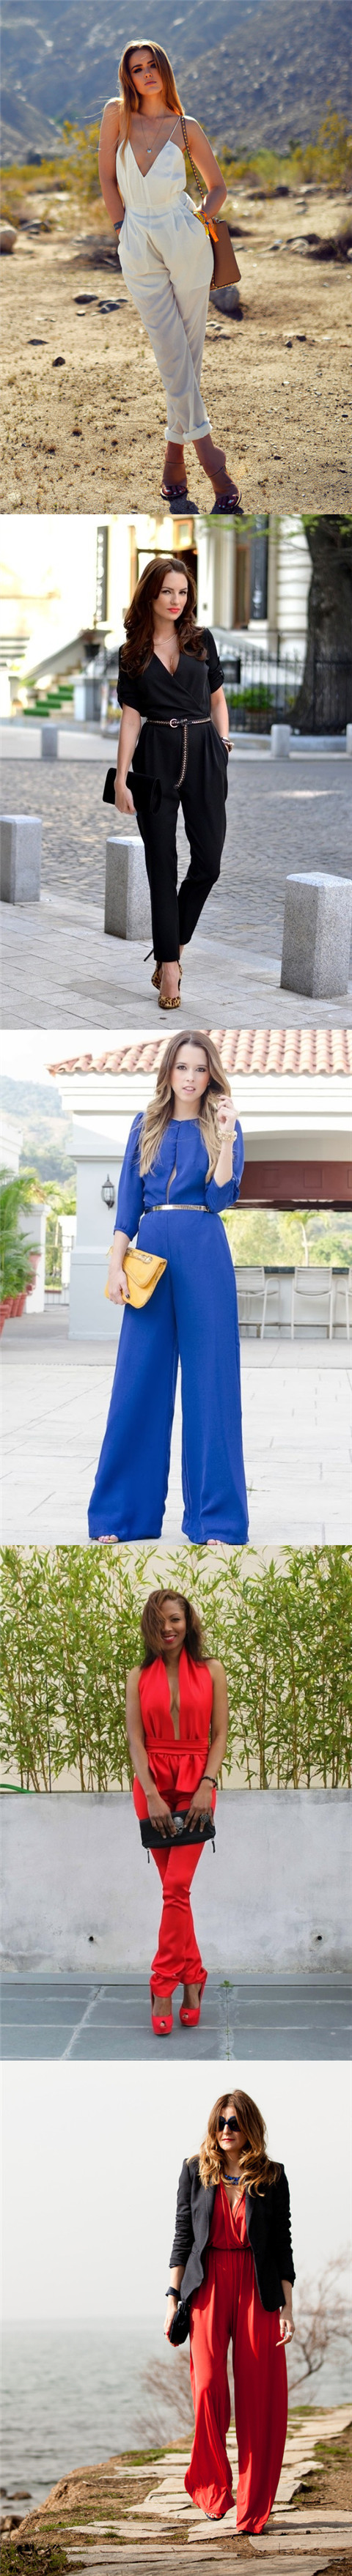 Long Jumpsuit Outfit Ideas